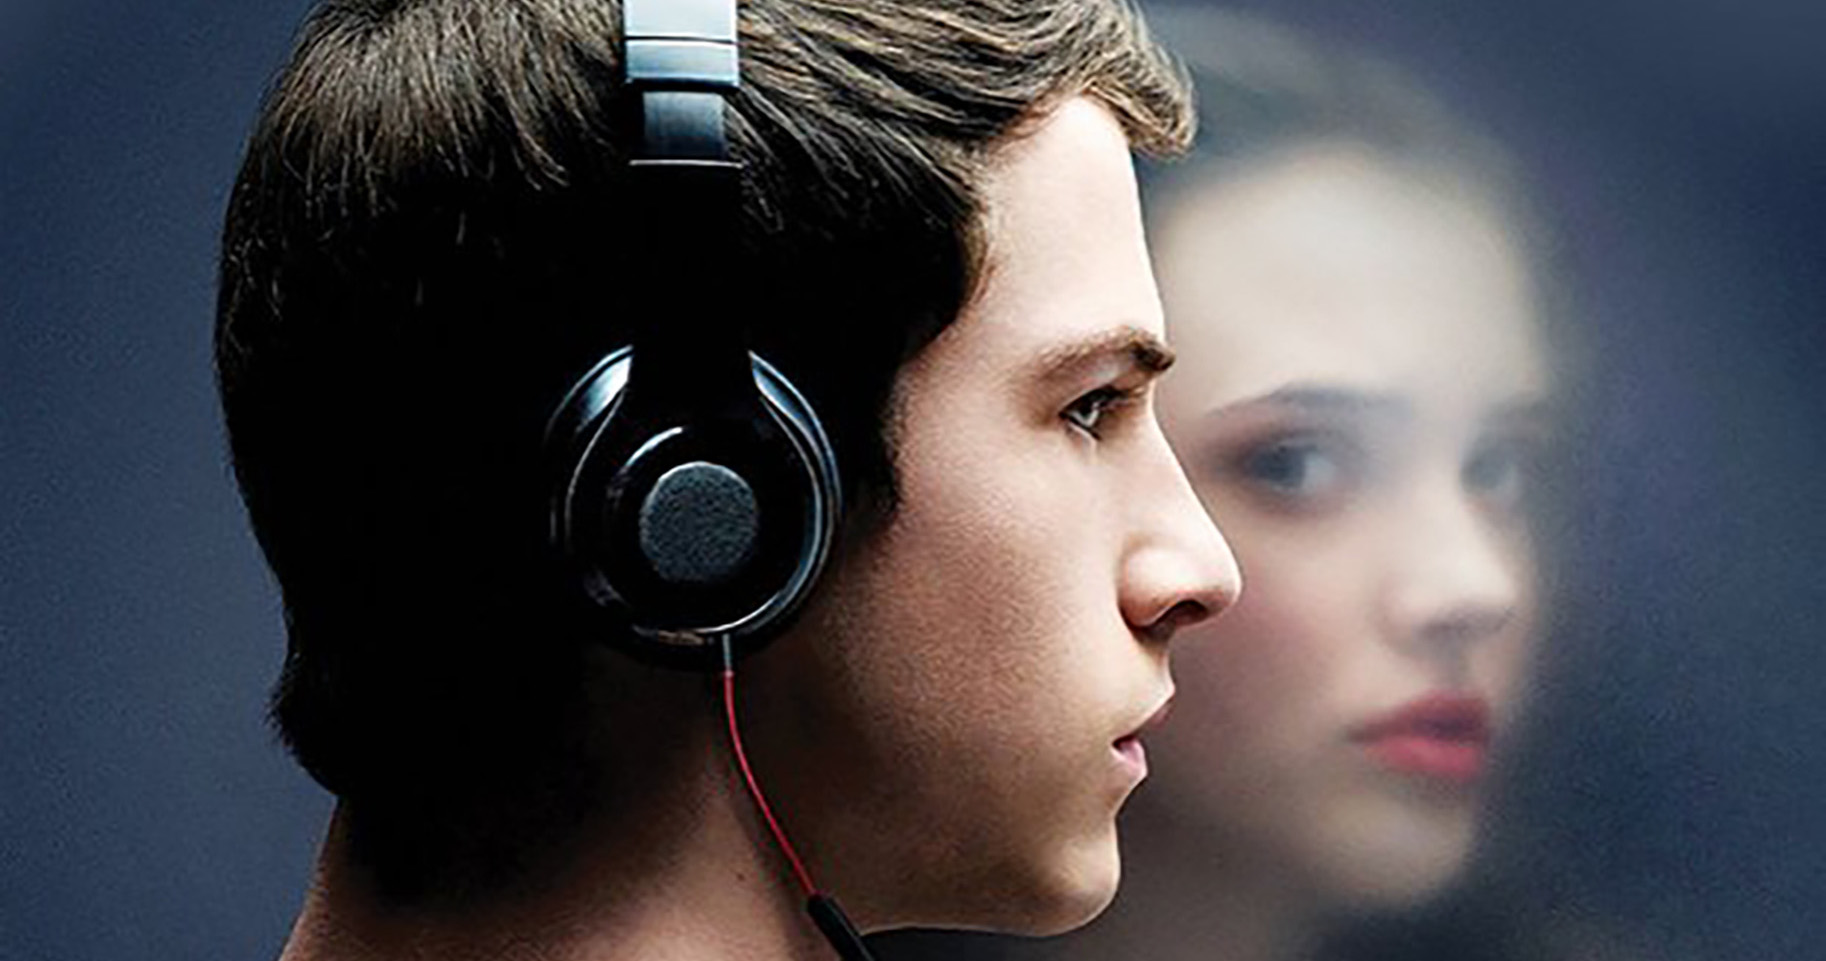 13 reasons why - photo #25